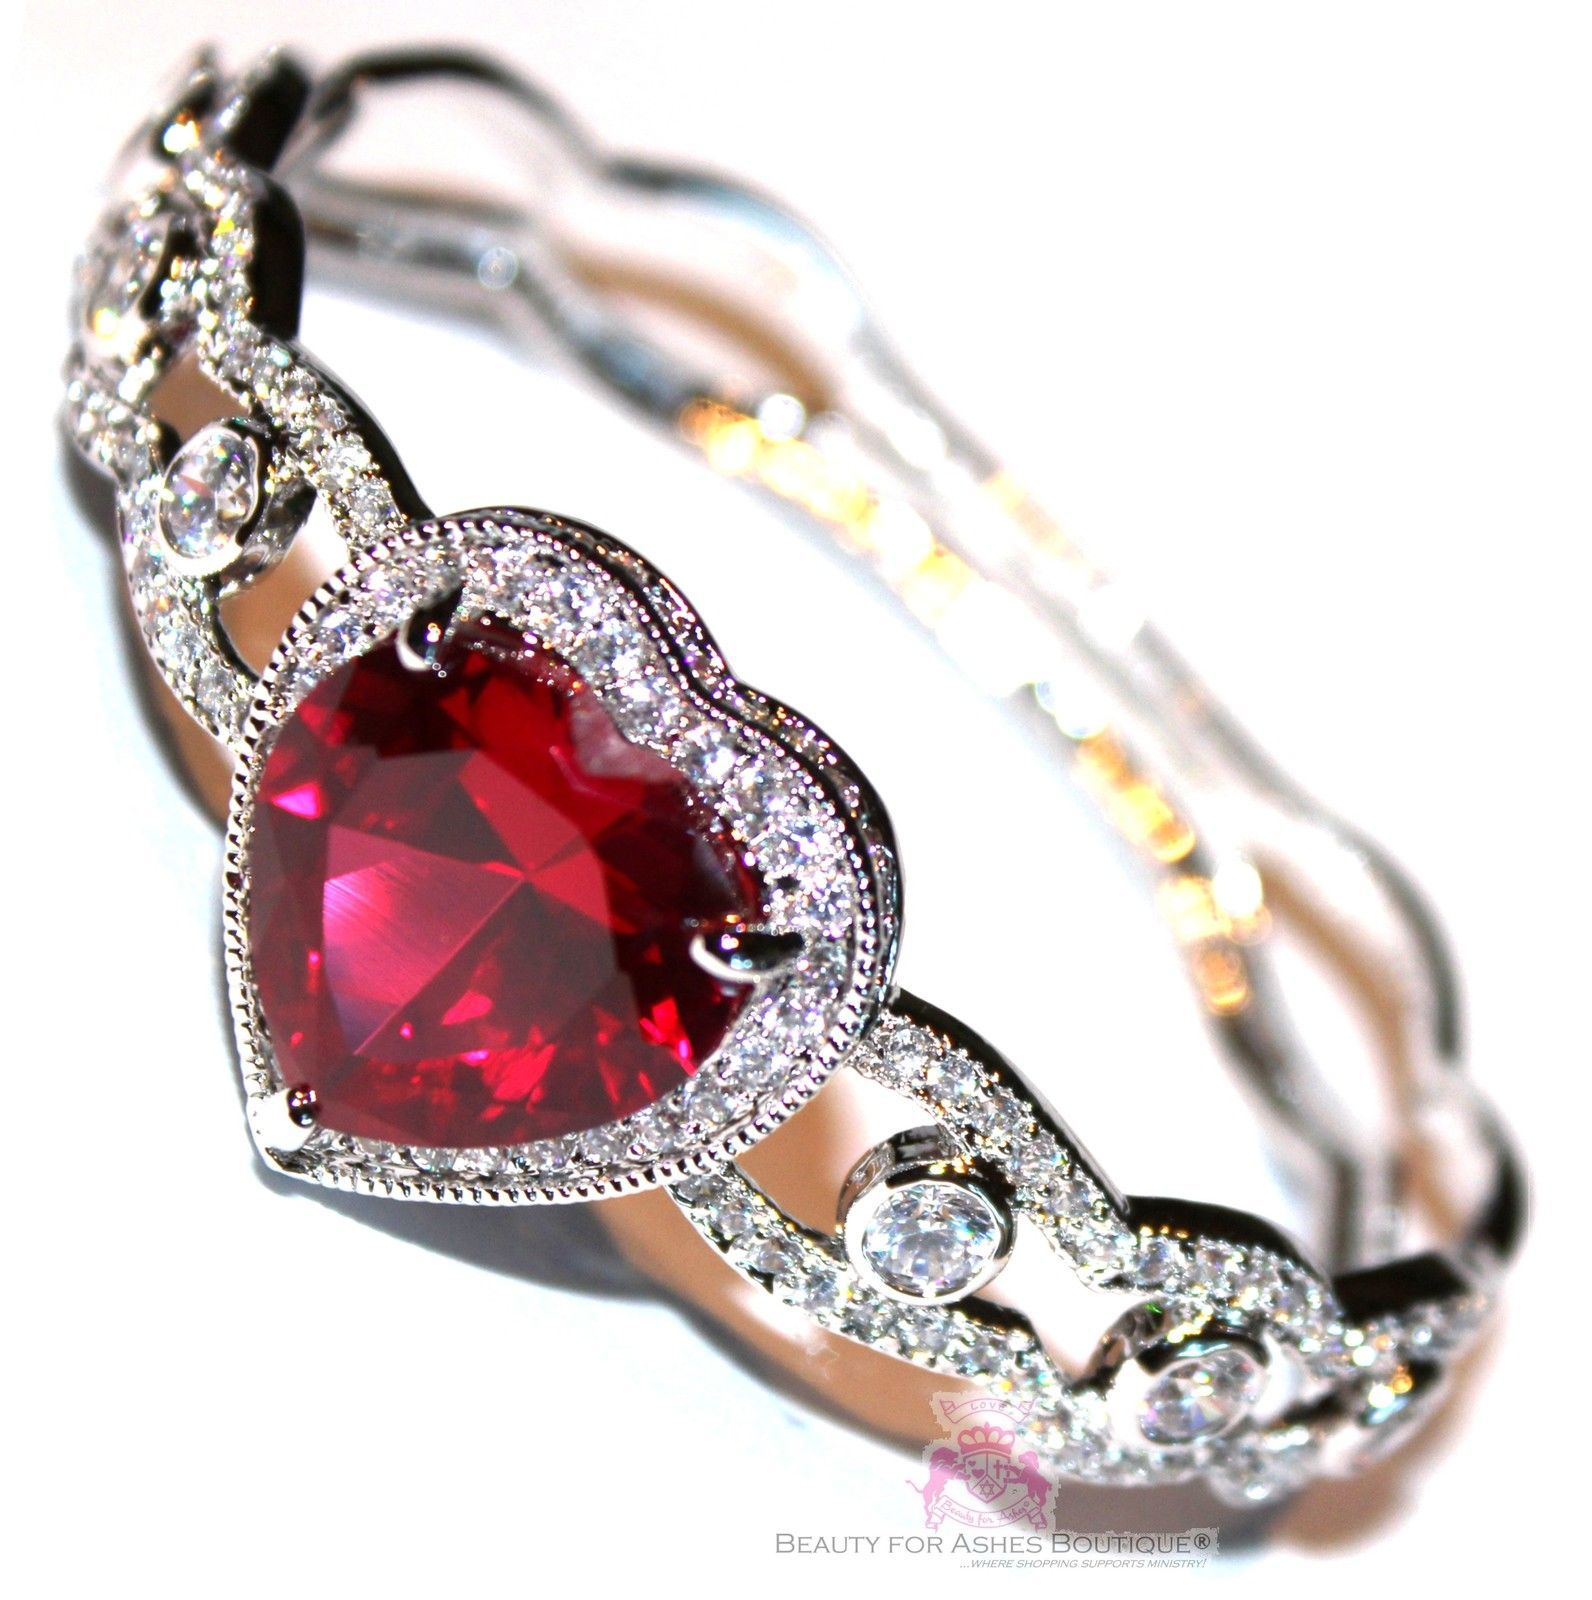 Beauty for Ashes® Ruby Red Heart Valentines Day Gift of Love Cuff CZ Bracelet